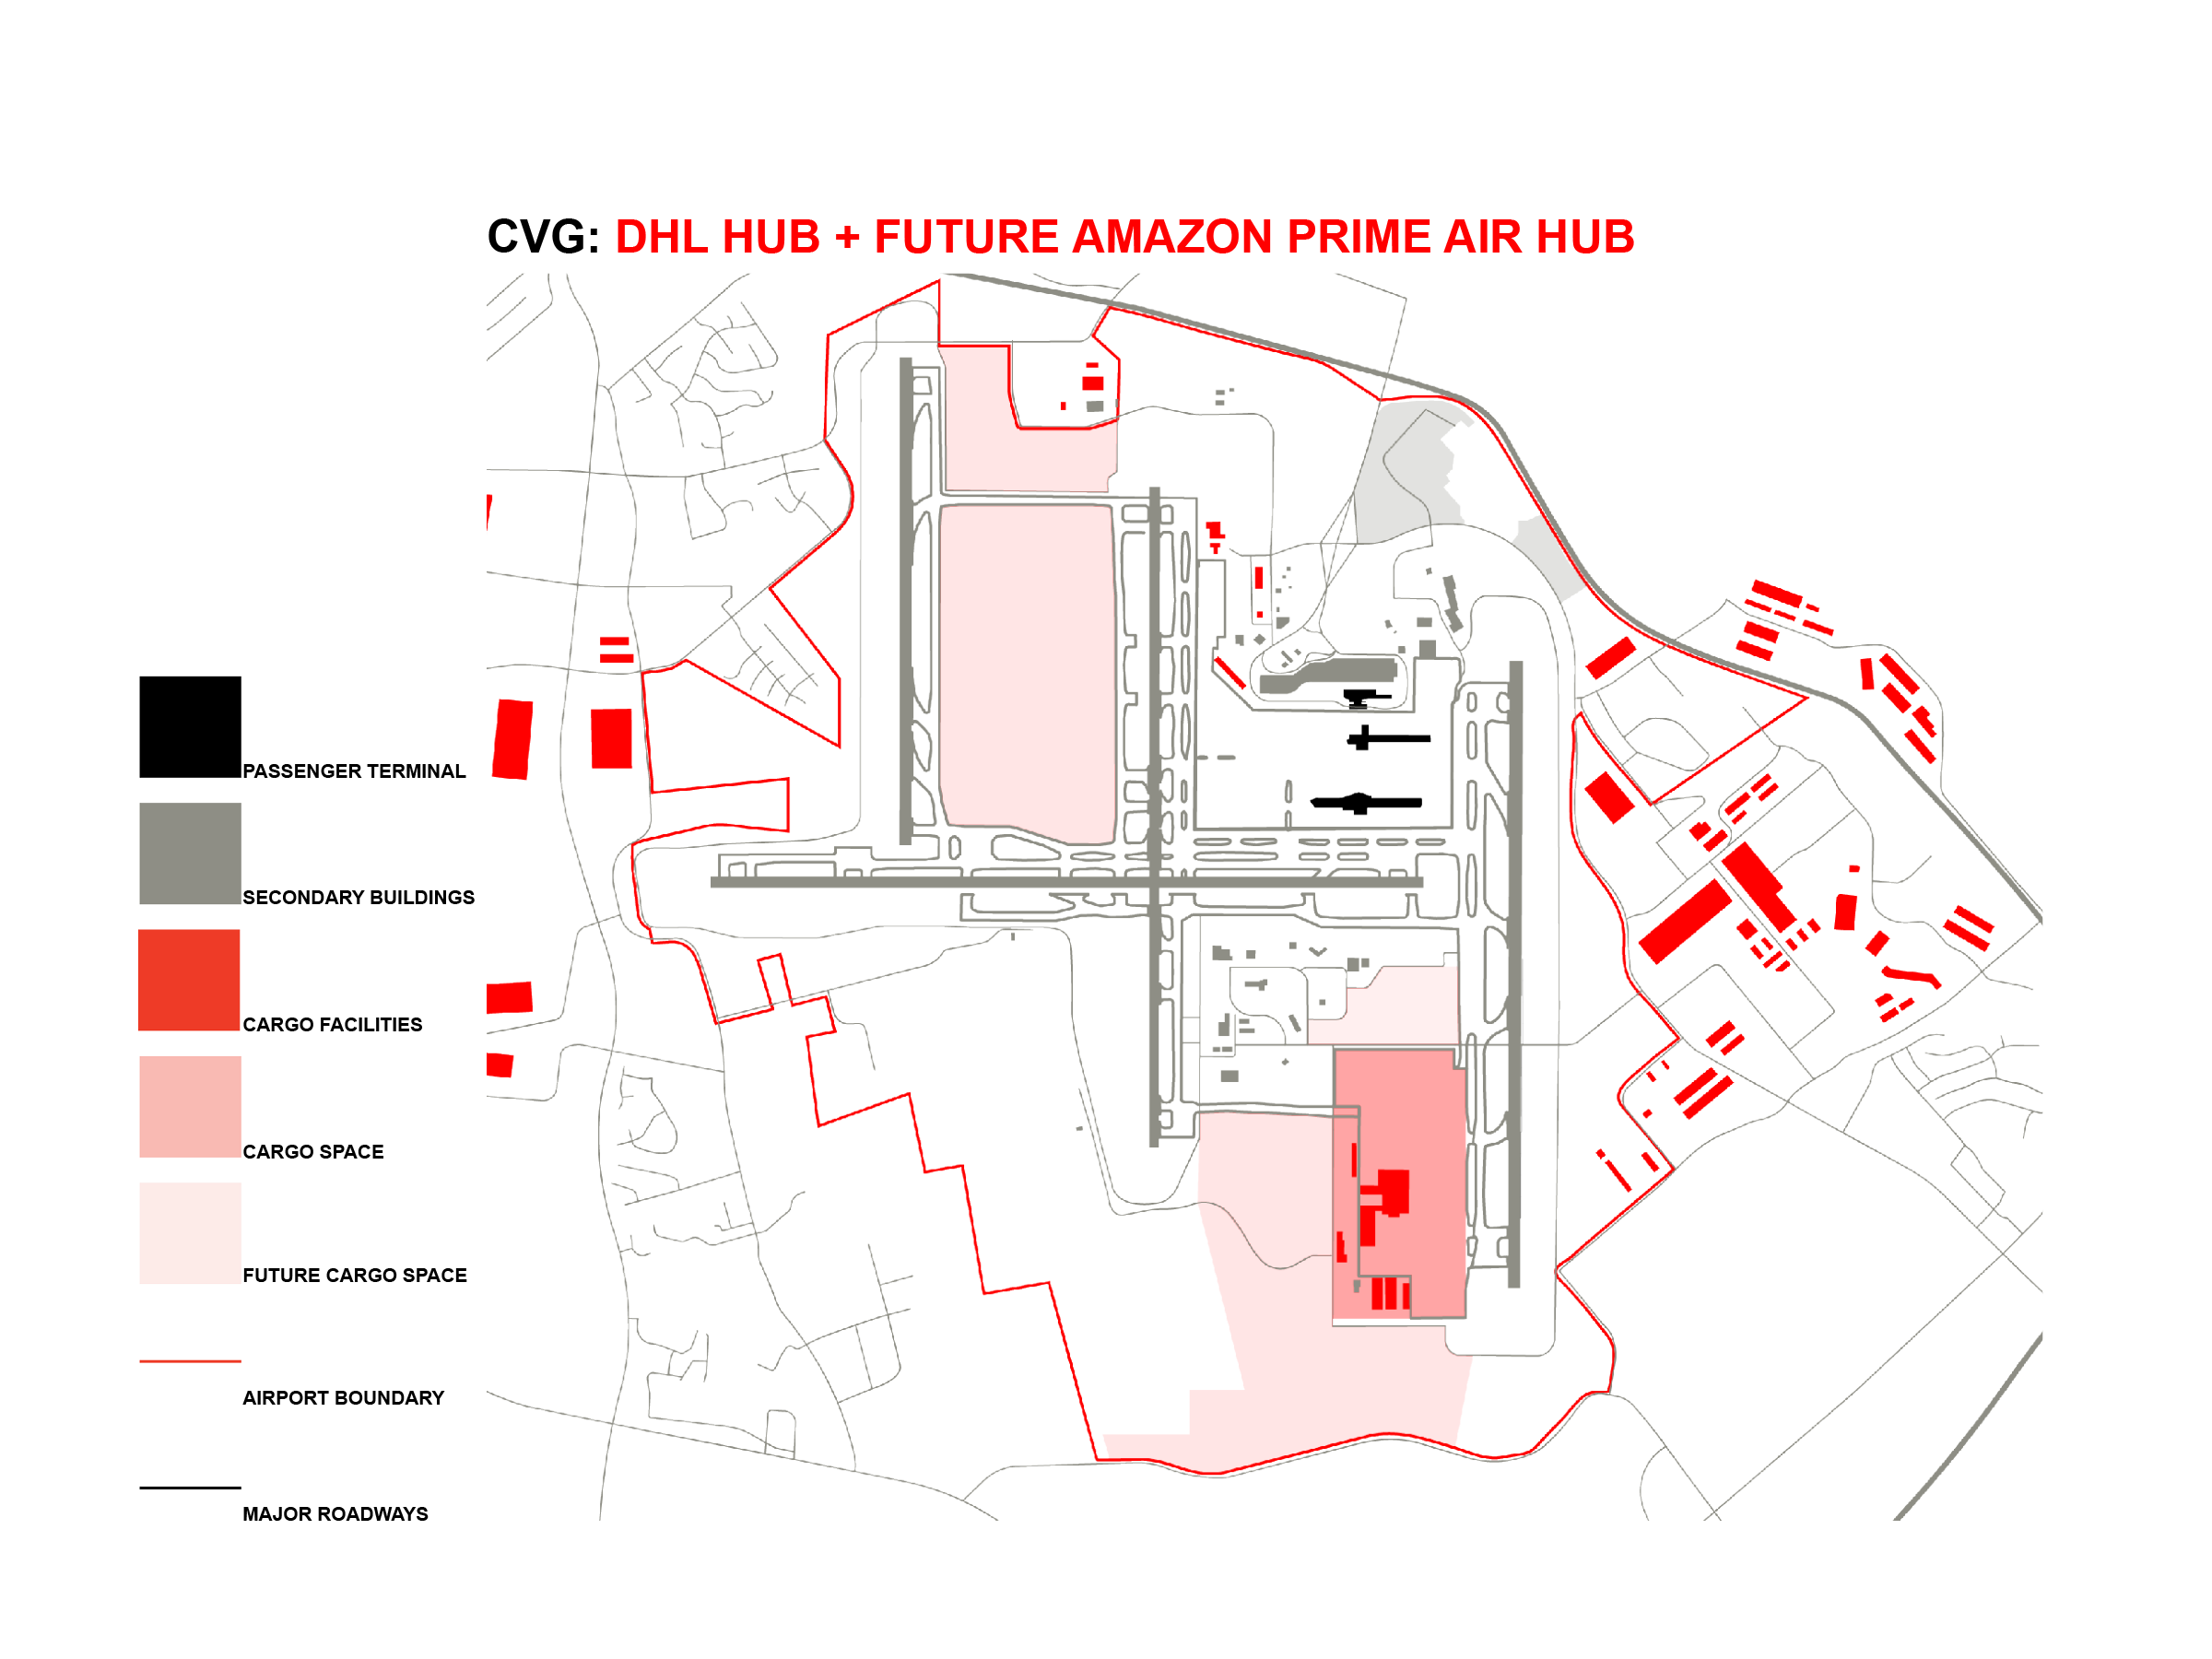 CVG_DHL DUB + FUTURE AMAZON PRIME AIR HUB_2017-12-18__150.png